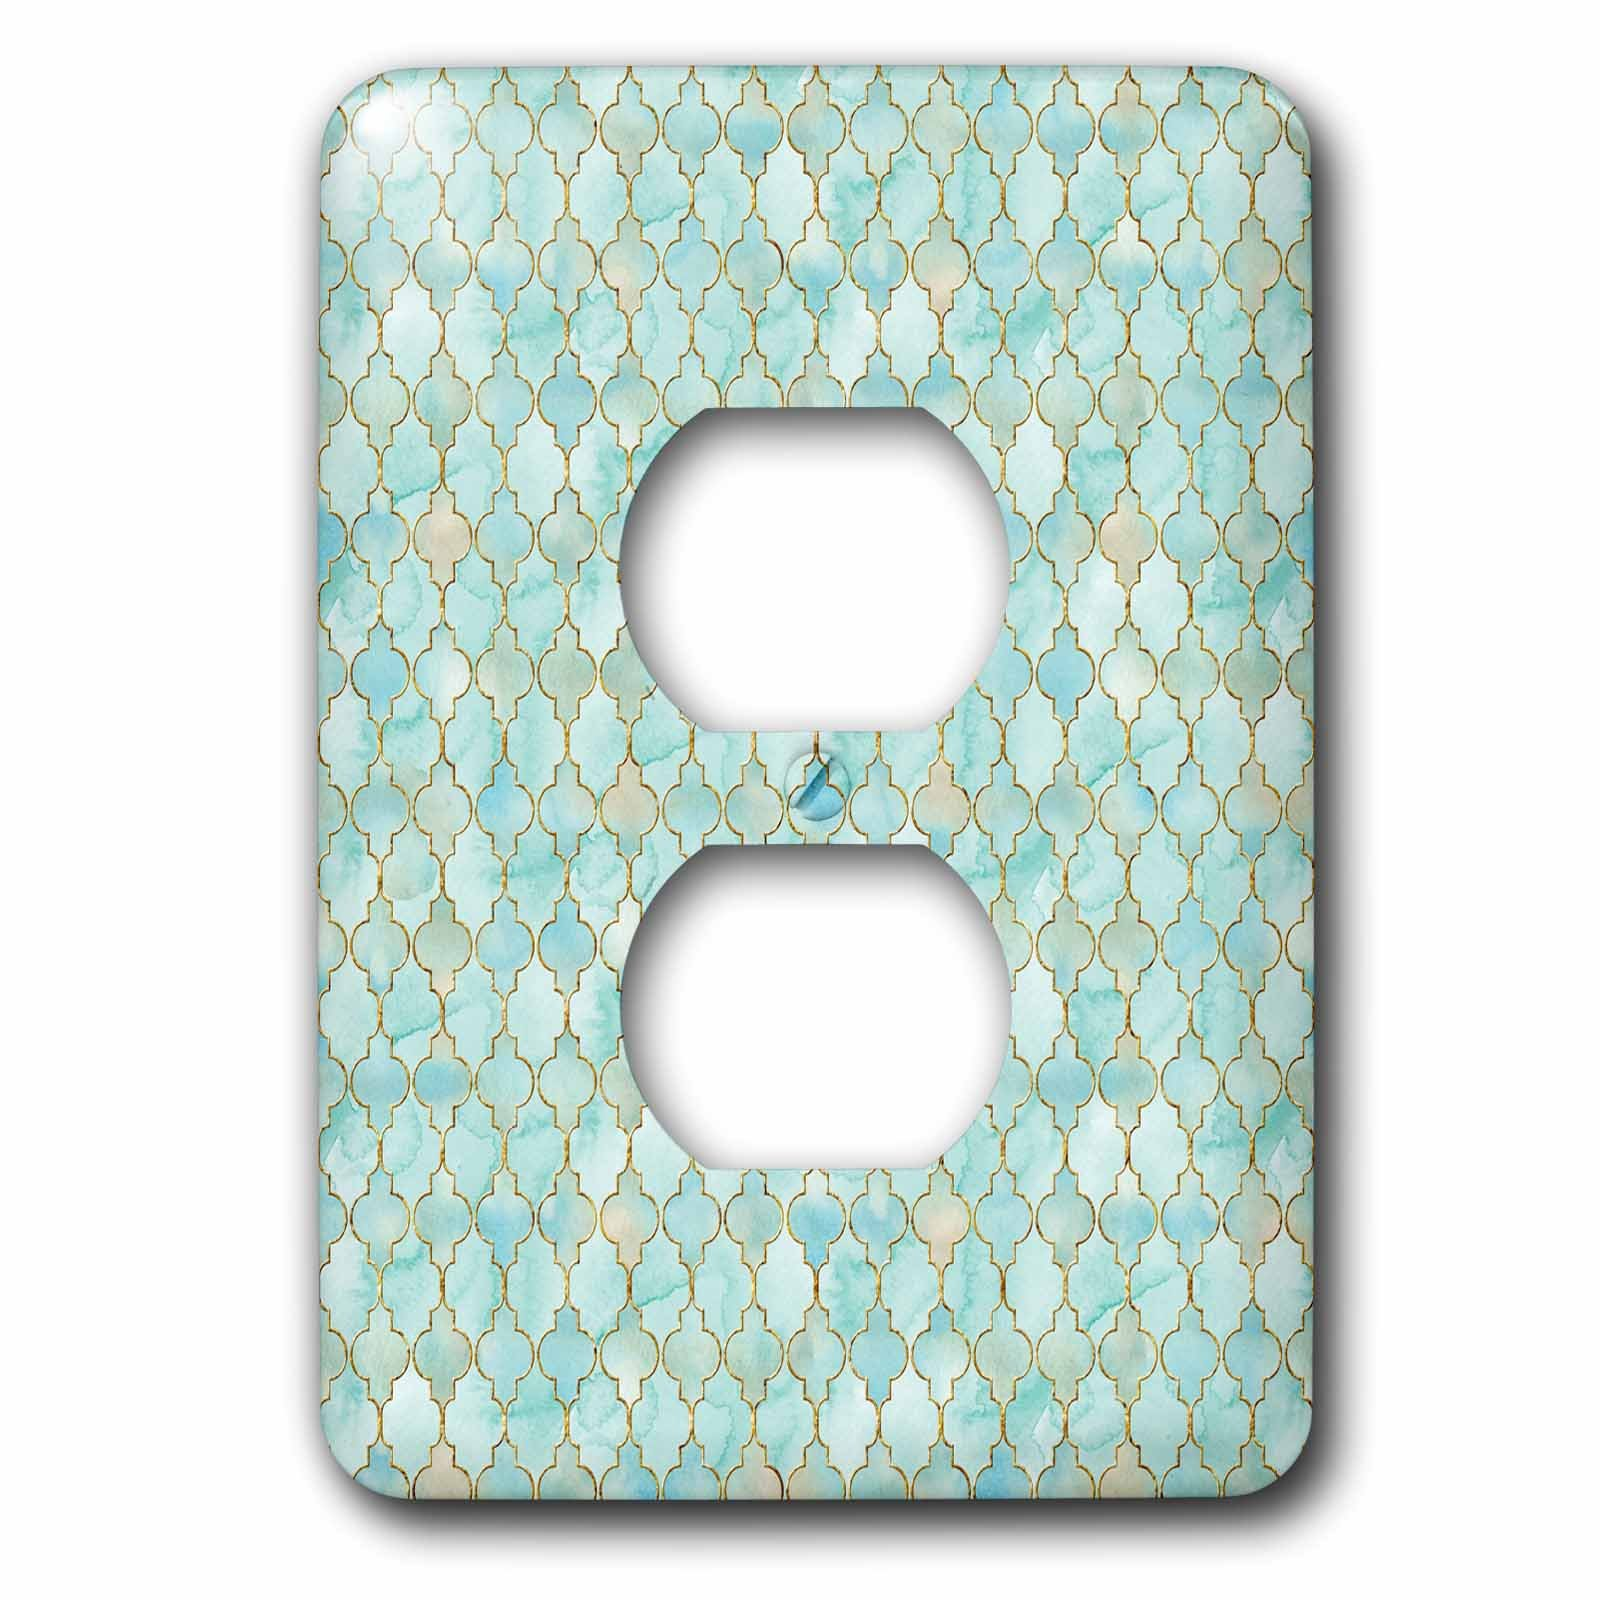 3dRose Uta Naumann Faux Glitter Pattern - Luxury Trendy Gold And Teal Moroccan Arabic Quatrefoil Tile Pattern - Light Switch Covers - 2 plug outlet cover (lsp_268950_6) by 3dRose (Image #1)